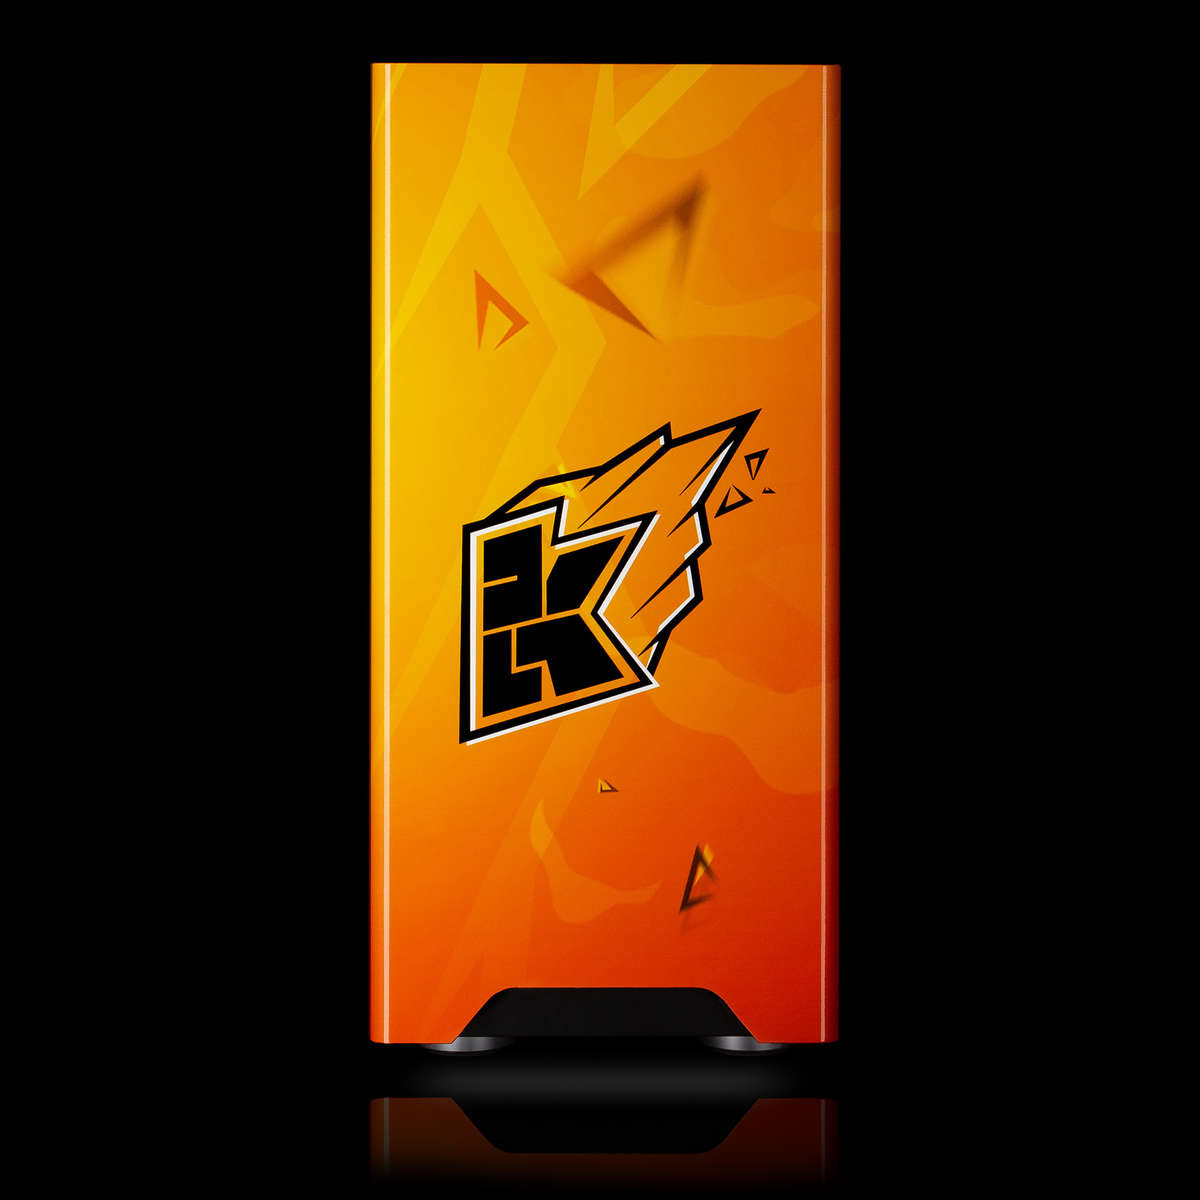 Chillblast Official Kwebbelkop Gaming PC